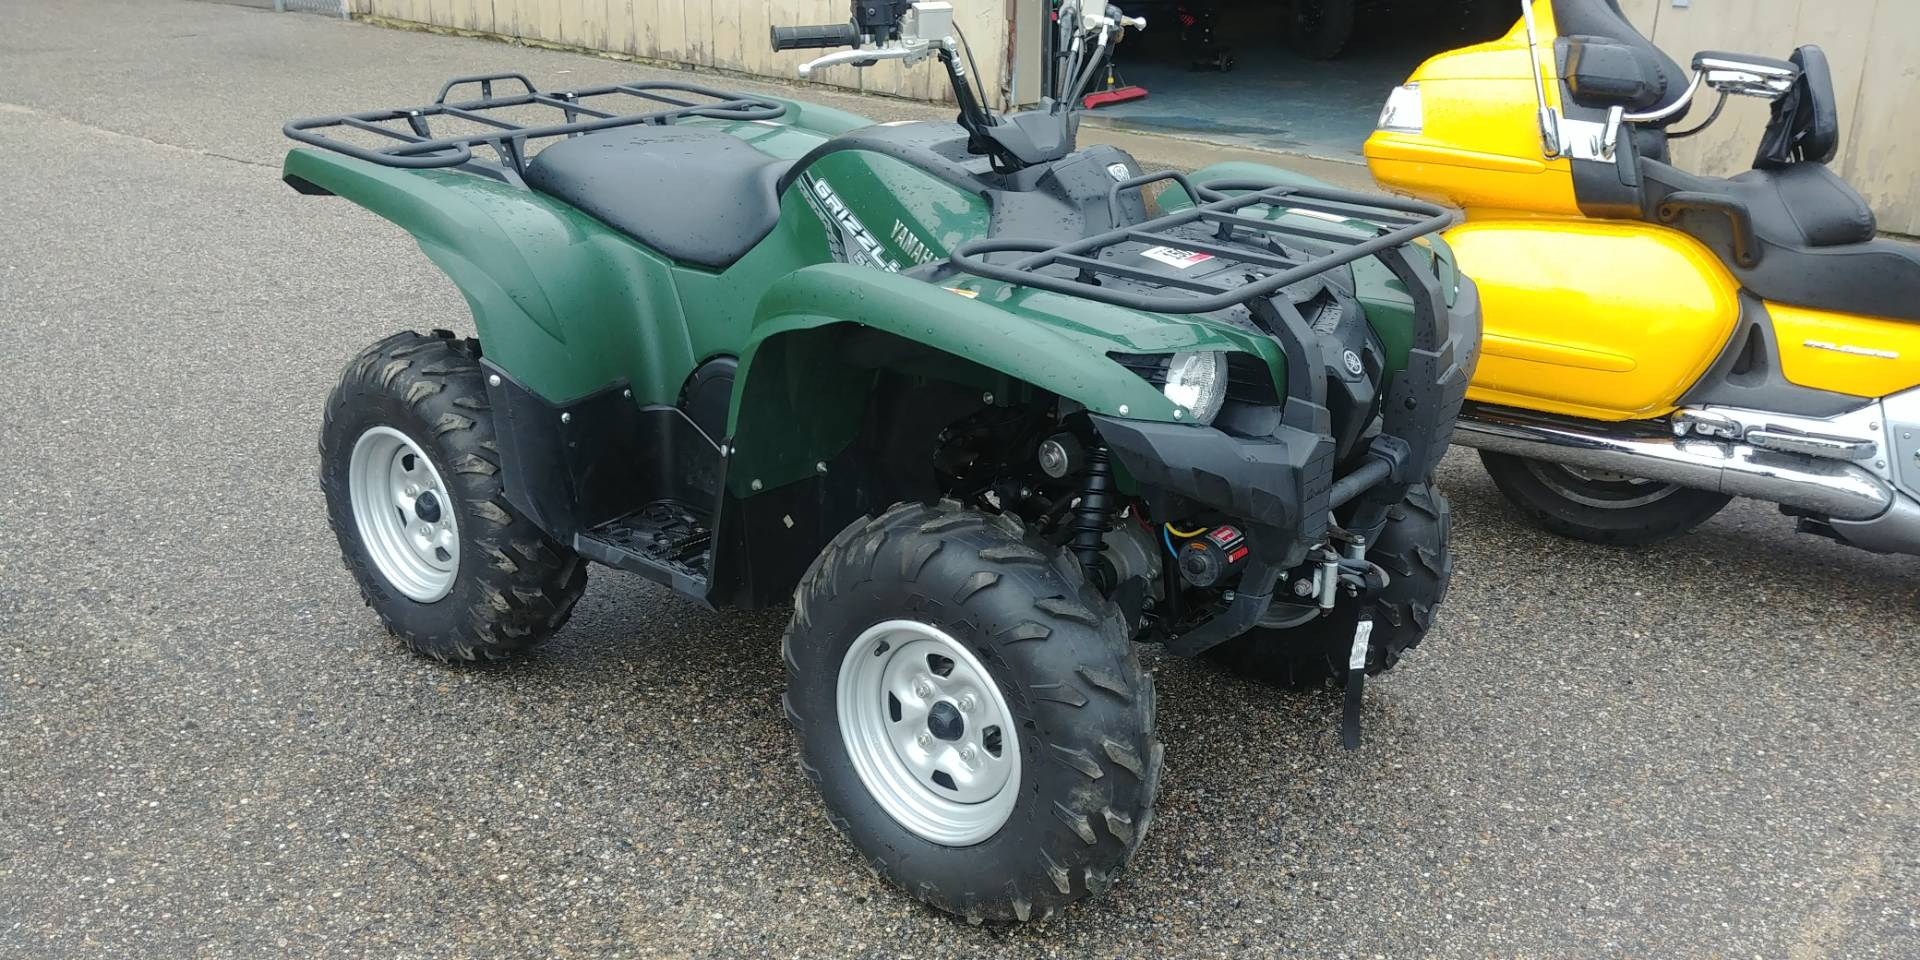 Used 2014 Yamaha Grizzly 550 FI Auto. 4x4 EPS ATVs in Tamworth, NH ...